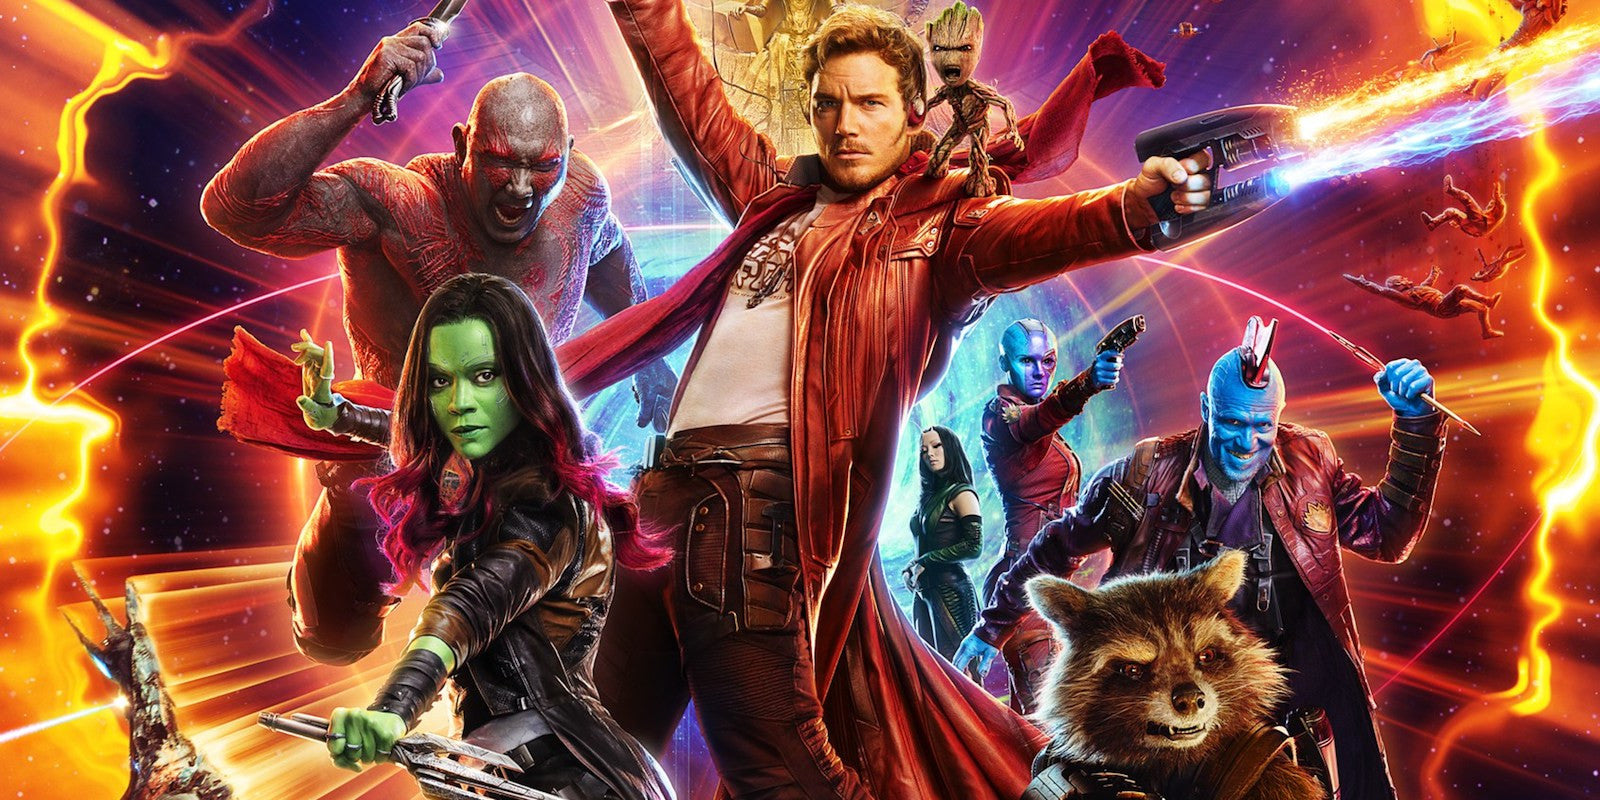 Movie Spotlight: Guardians of the Galaxy 2